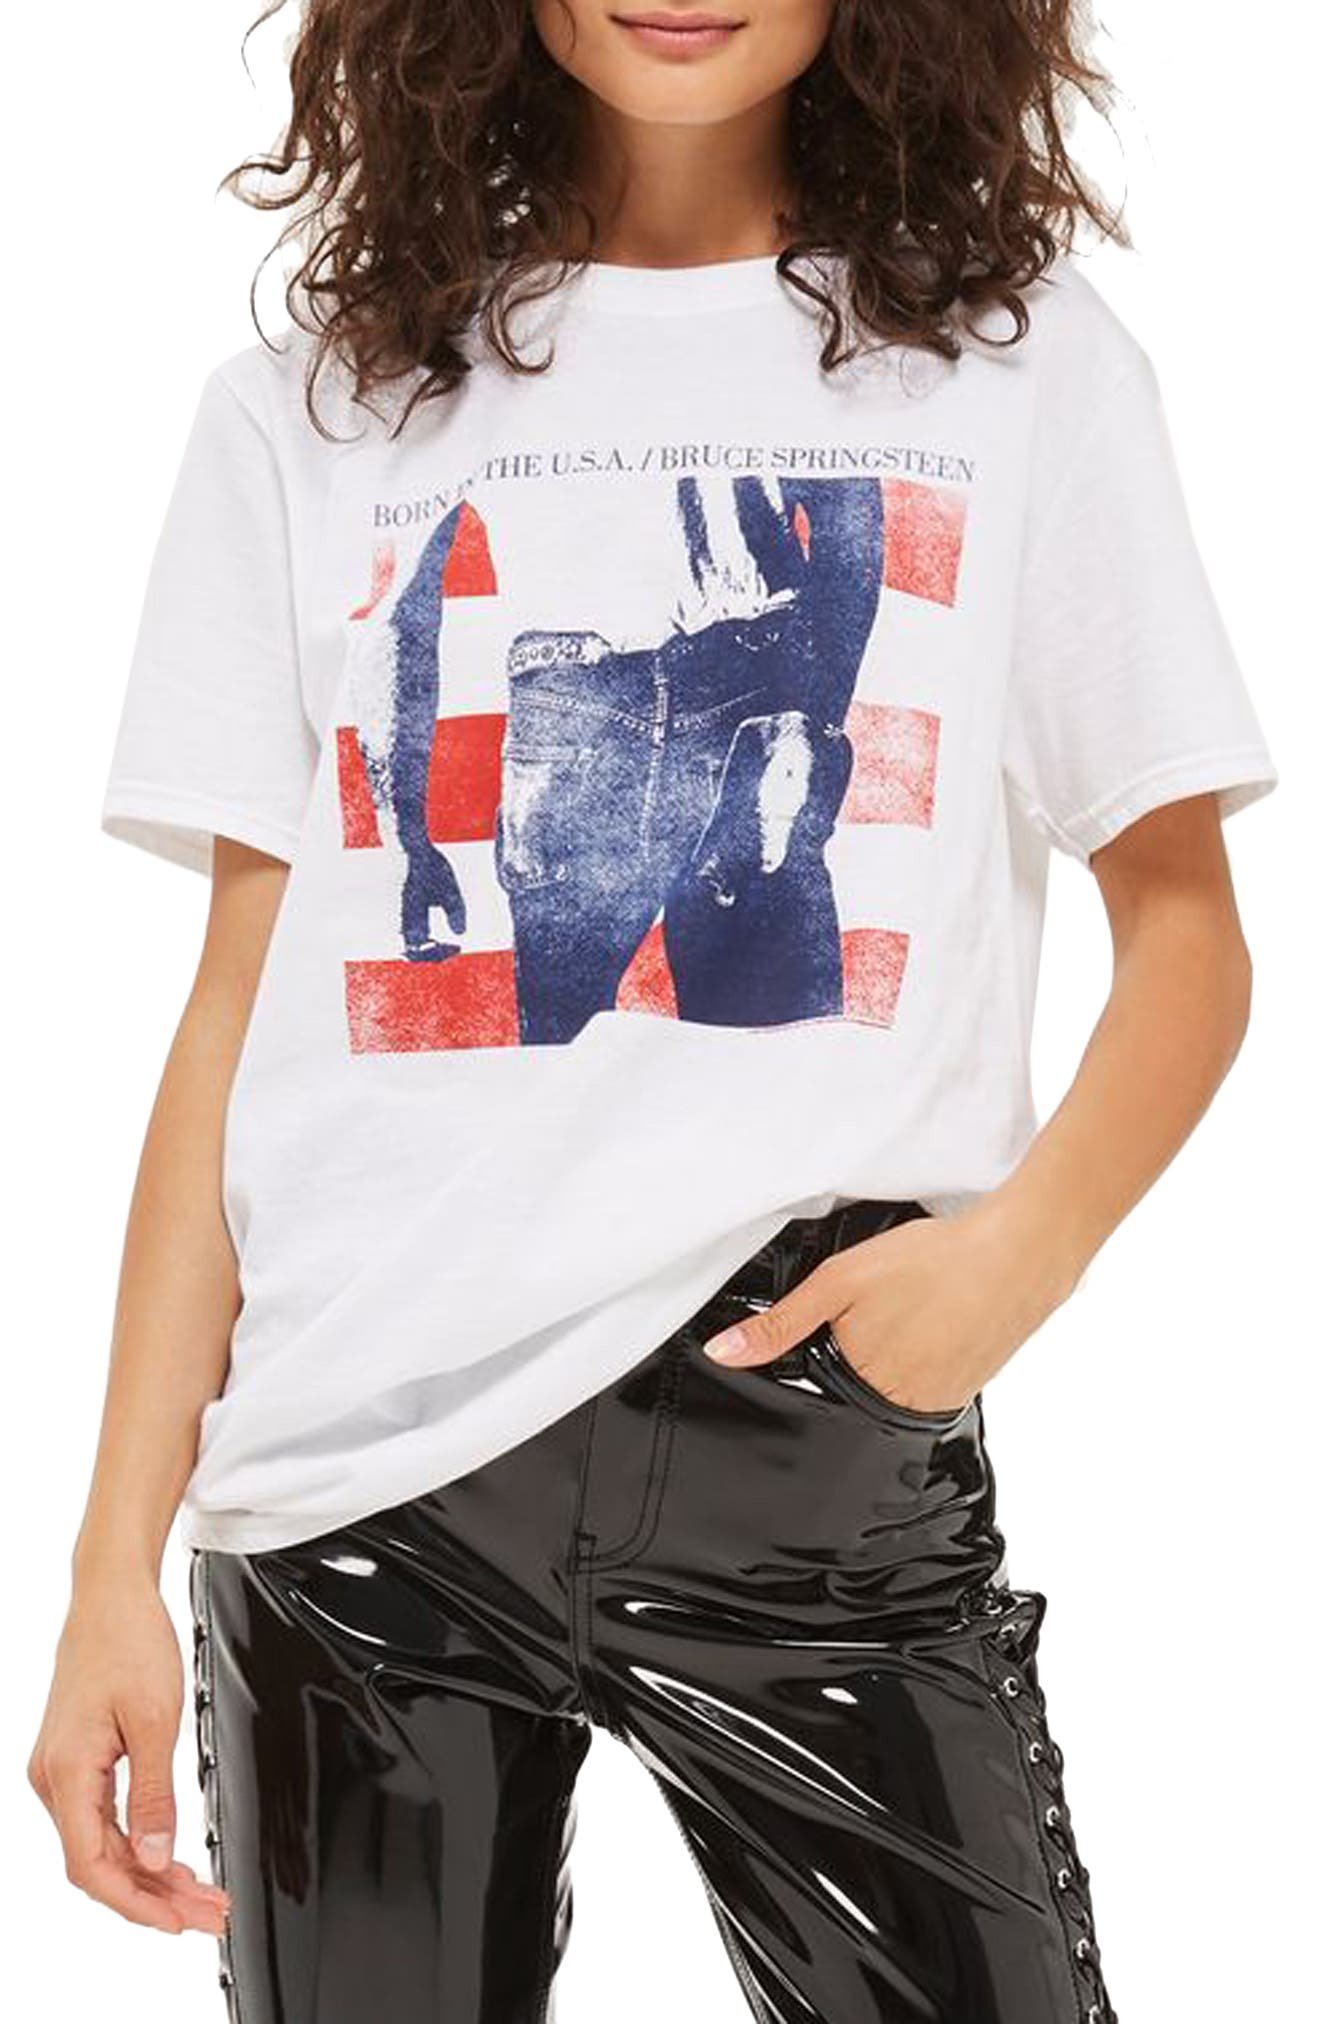 Topshop by And Finally Bruce Springsteen Graphic Tee